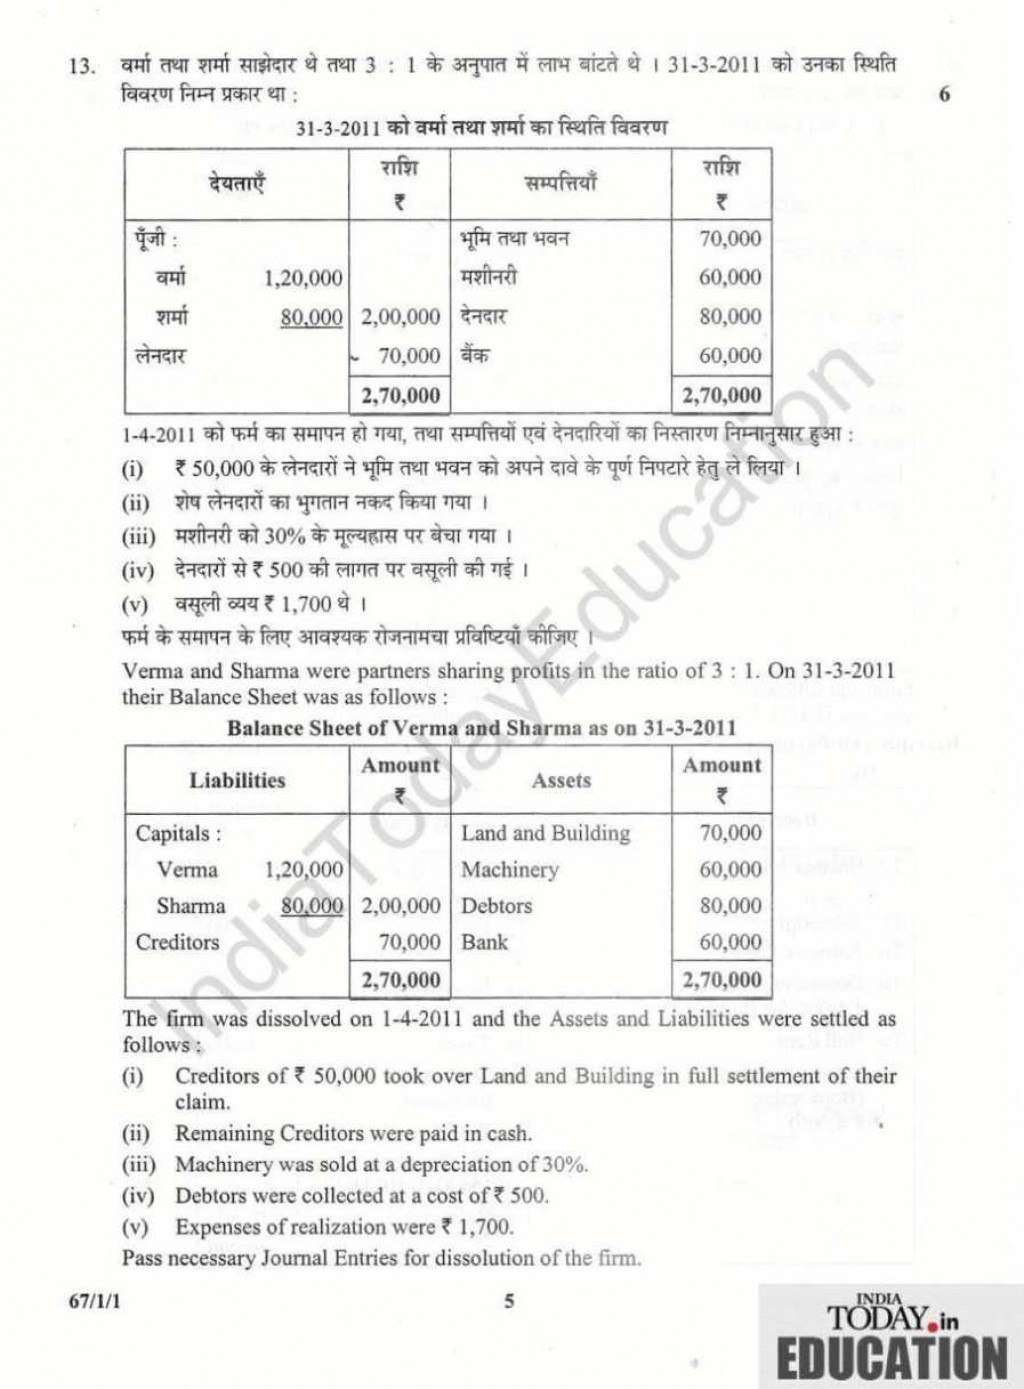 011 Essay Example Cbse Board Xii Commerce Previous Year Question Papers Uw Fascinating Prompt La Crosse Prompts University Of Wisconsin 2019 Bothell Large